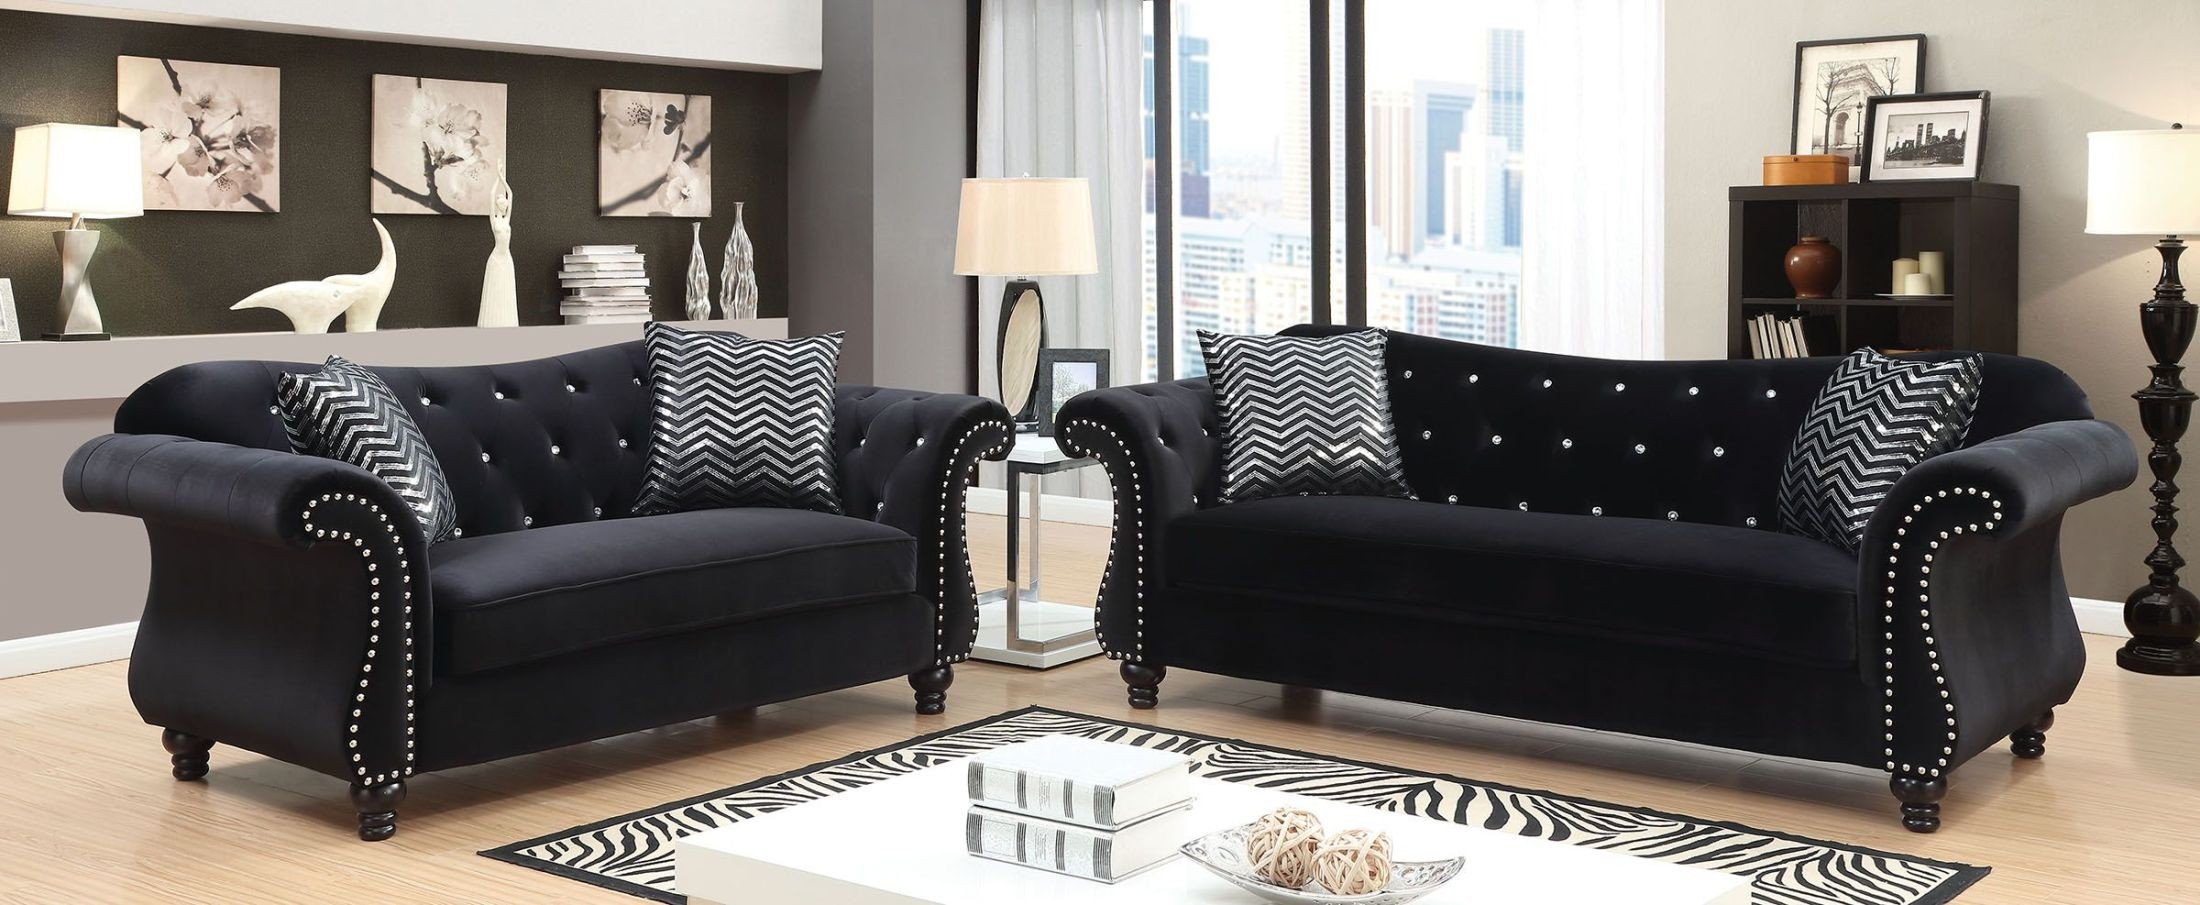 It's considered the centerpiece of a home for a reason. Jolanda I Black Living Room Set from Furniture of America ...